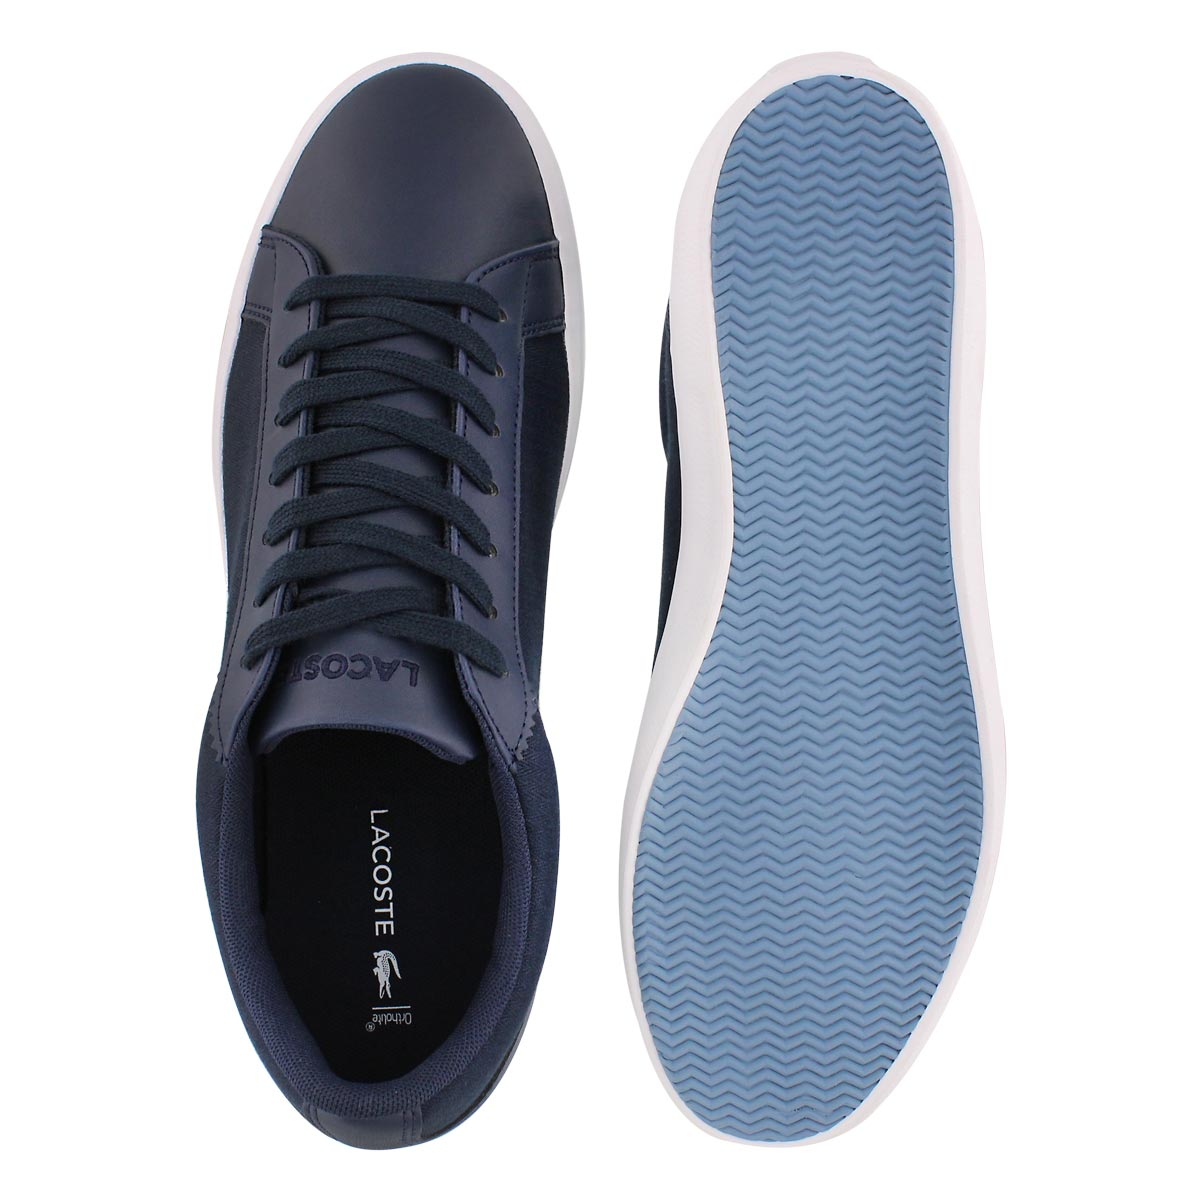 Mns Lerond 316 navy lace up sneaker